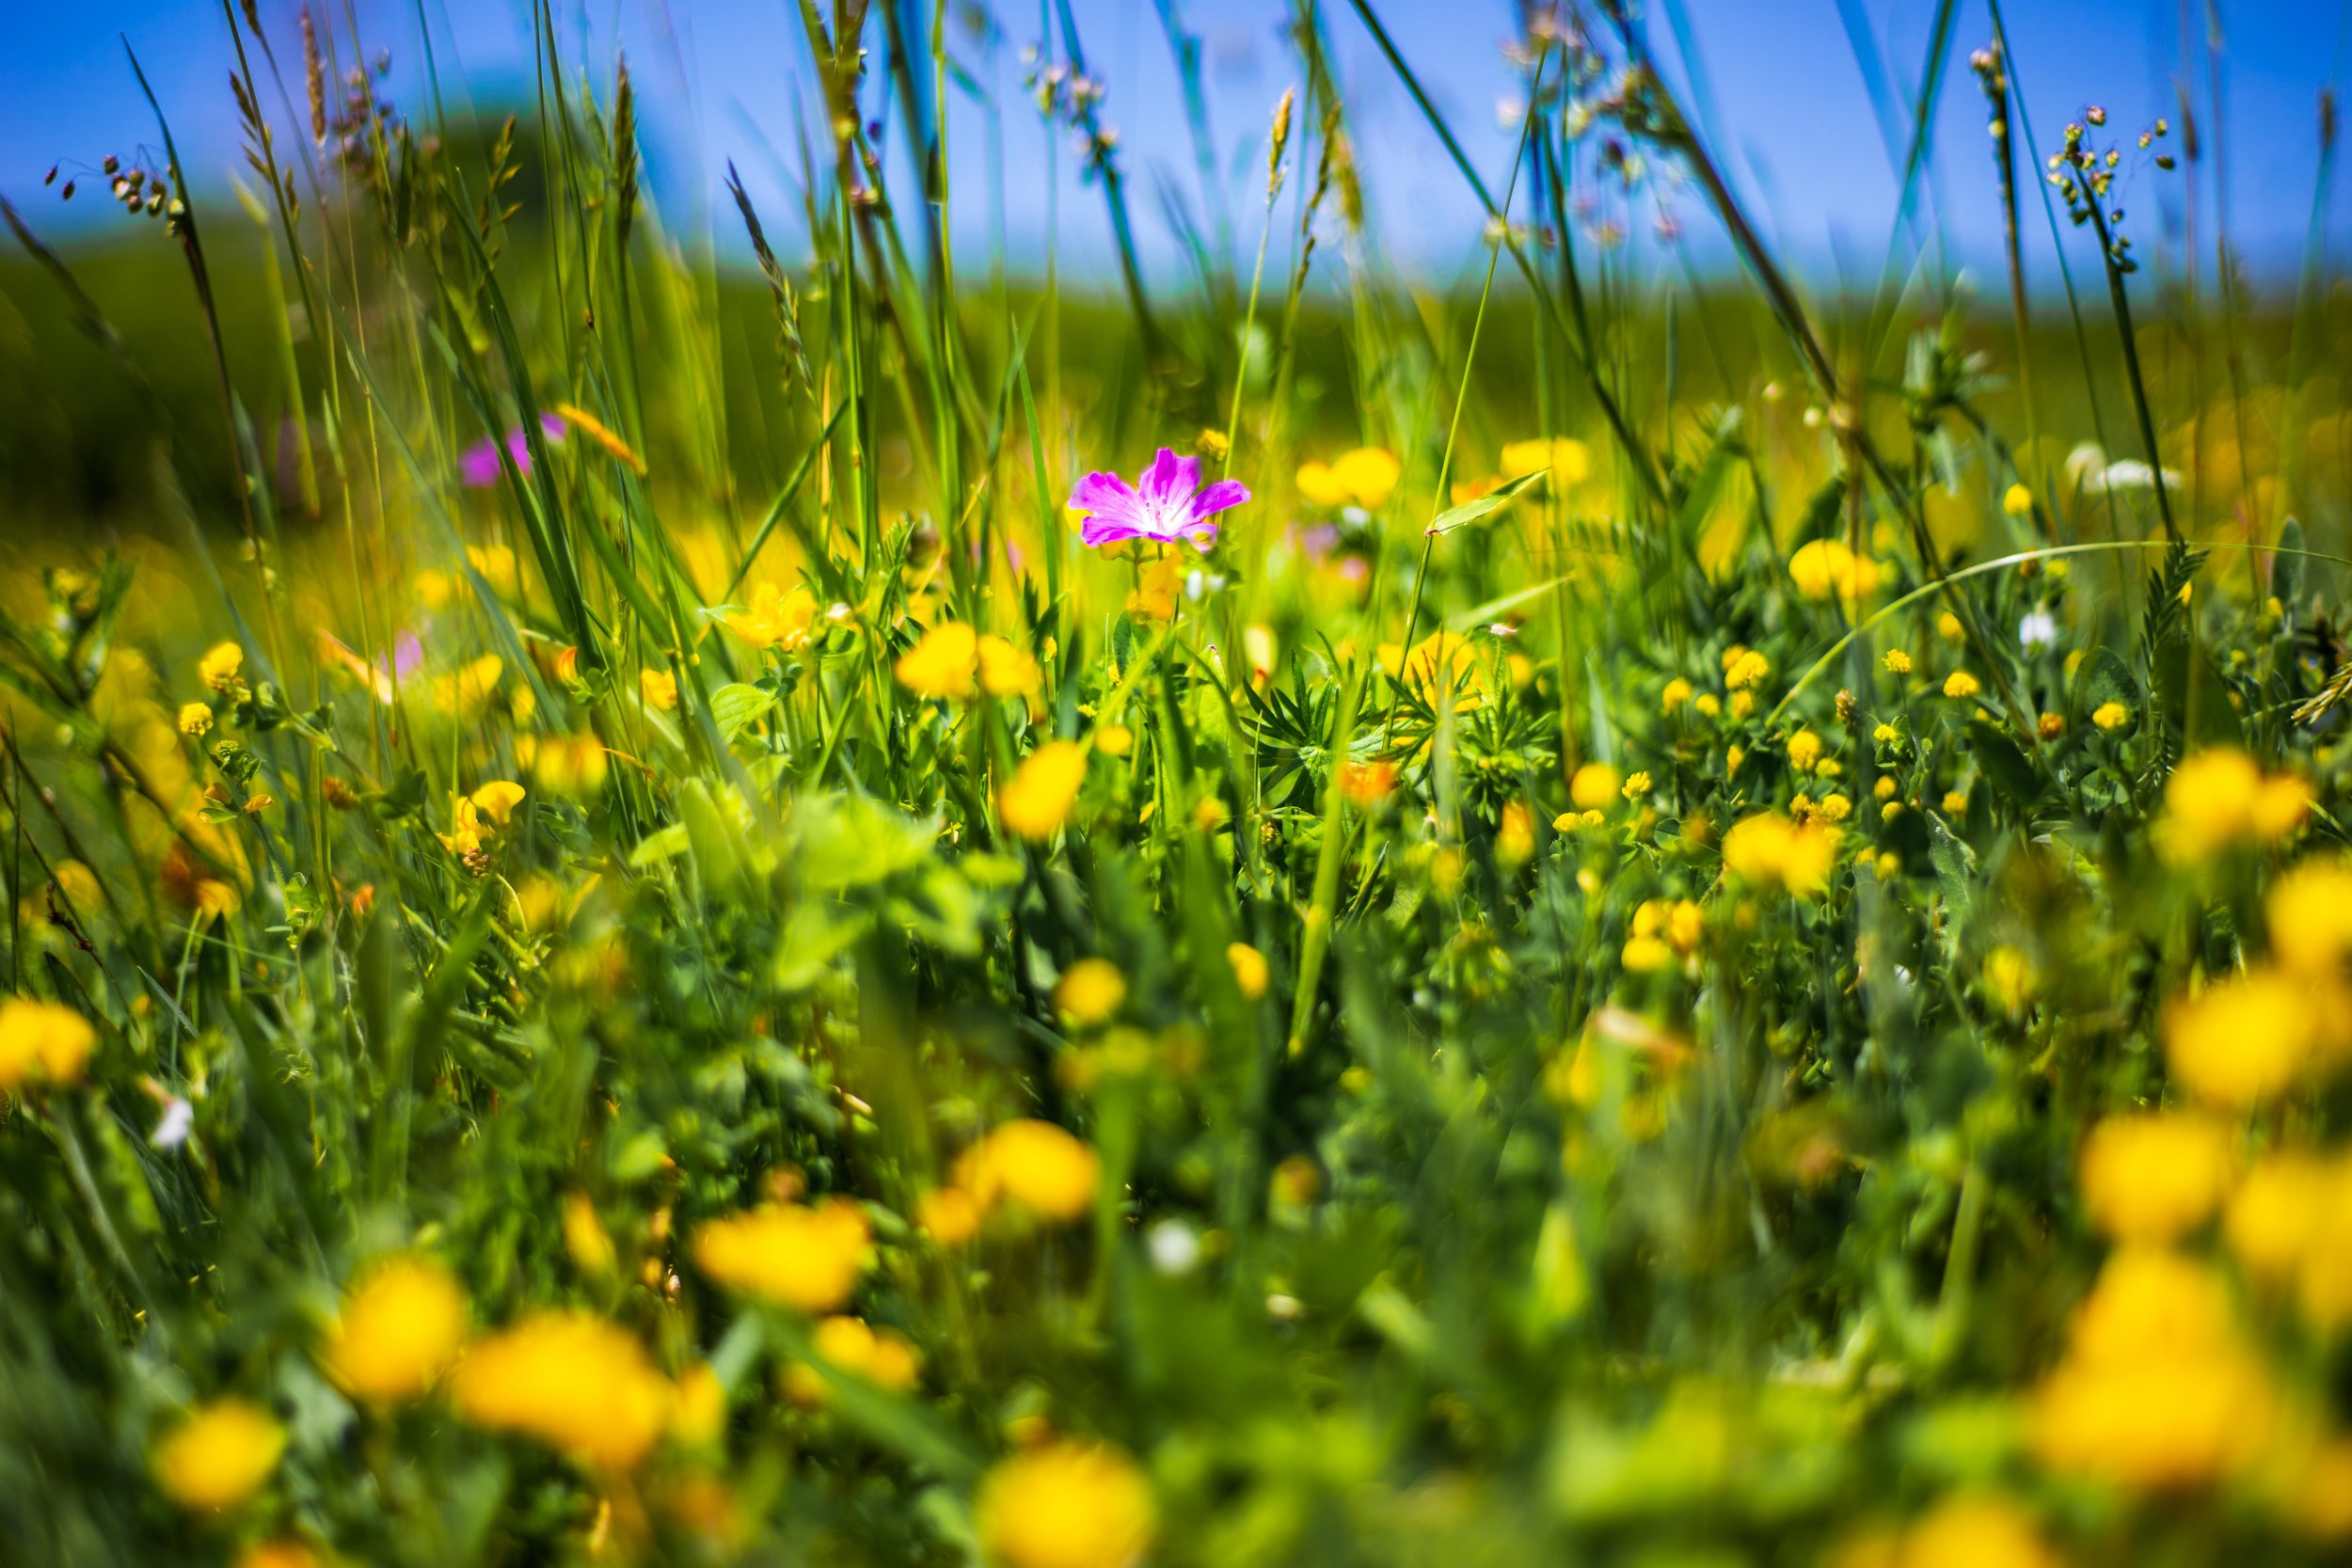 #Spring is the best time to see #wildflowers bloom in Burren National Park, Ireland. Visit in May for a spectacular display of colour and sunshine #ireland #travel #photography #offseason #nature